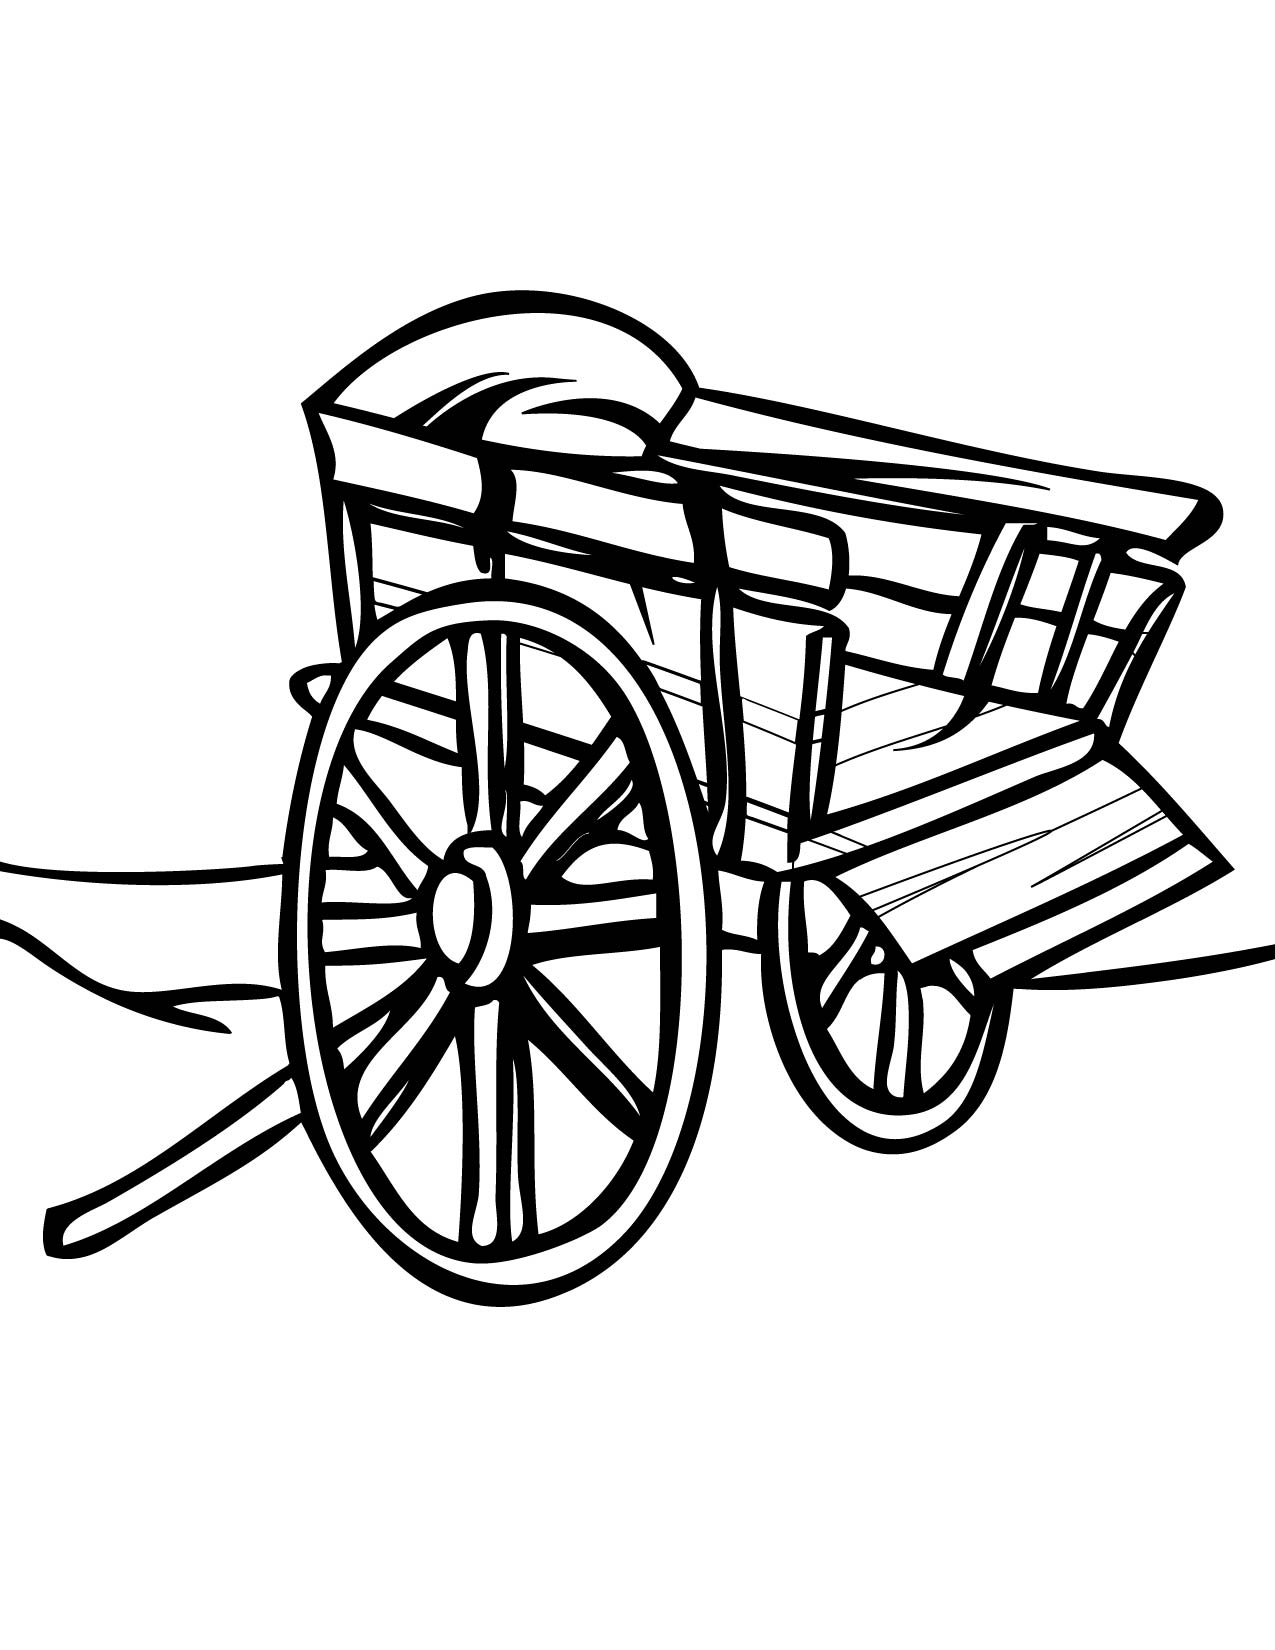 Golf Cart Coloring Page At Getcolorings